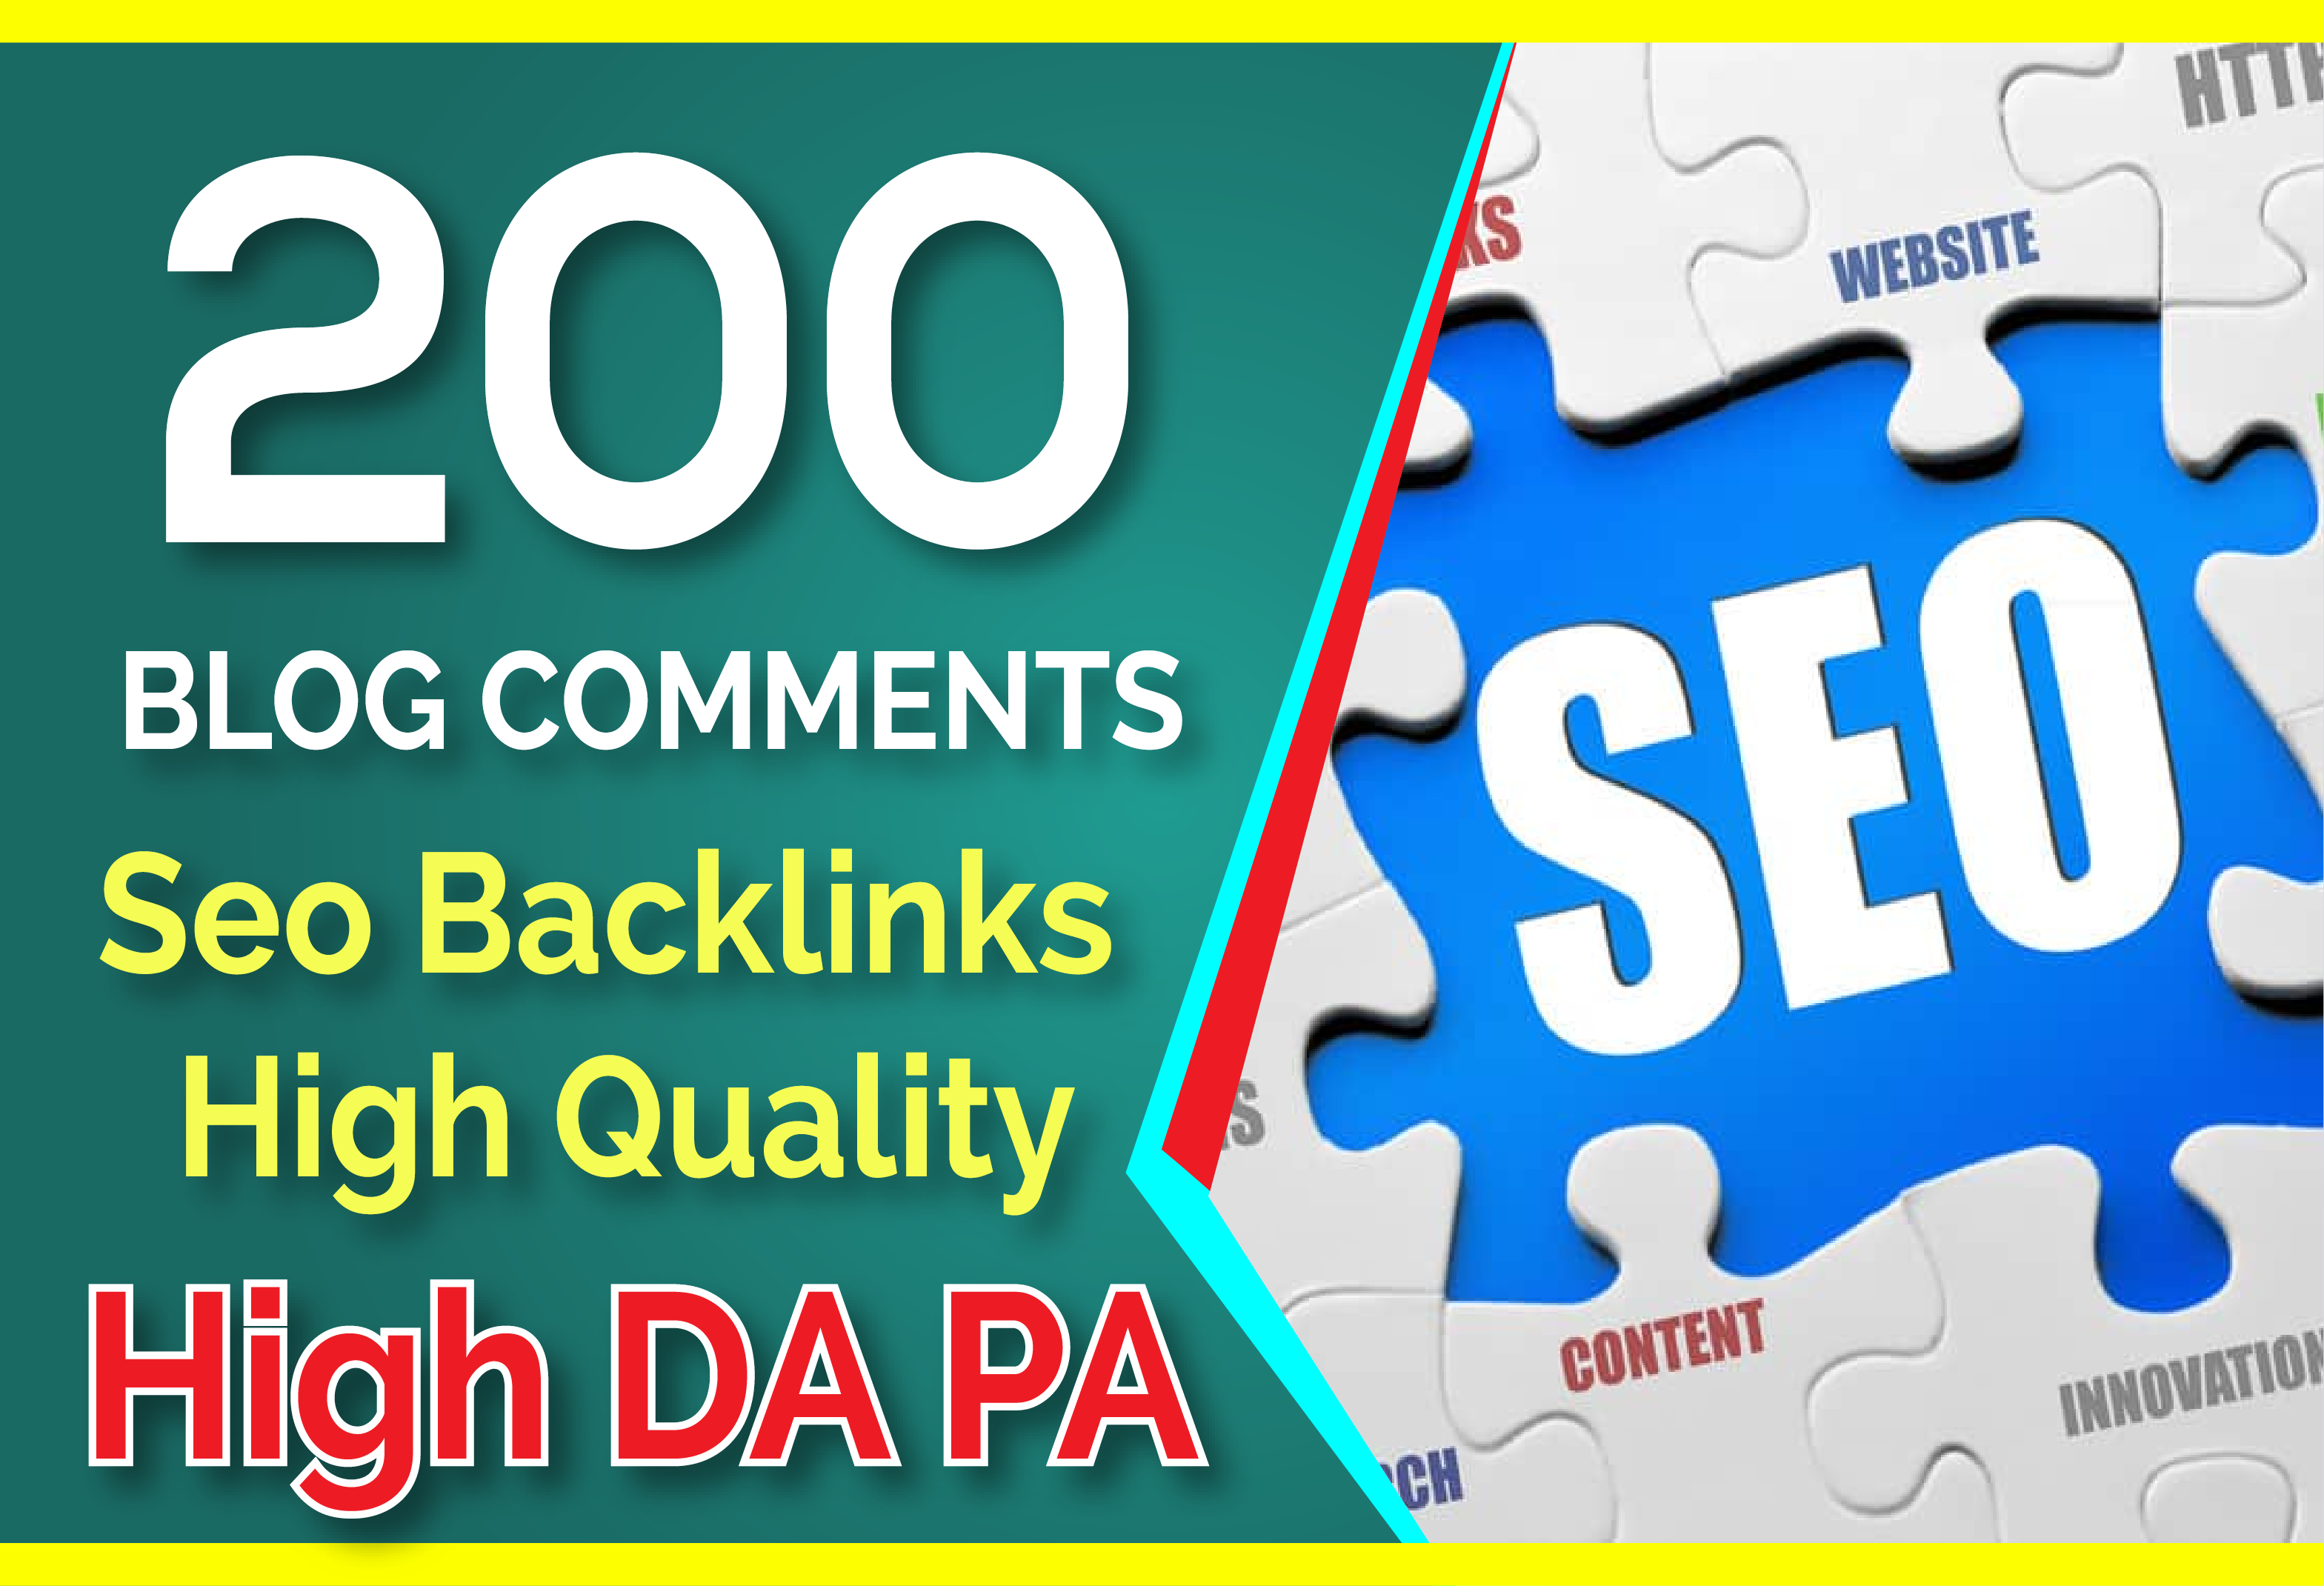 MANUALLY 200 HIGH QUALITY DOFOLLOW BLOG COMMENTS BACKLINKS